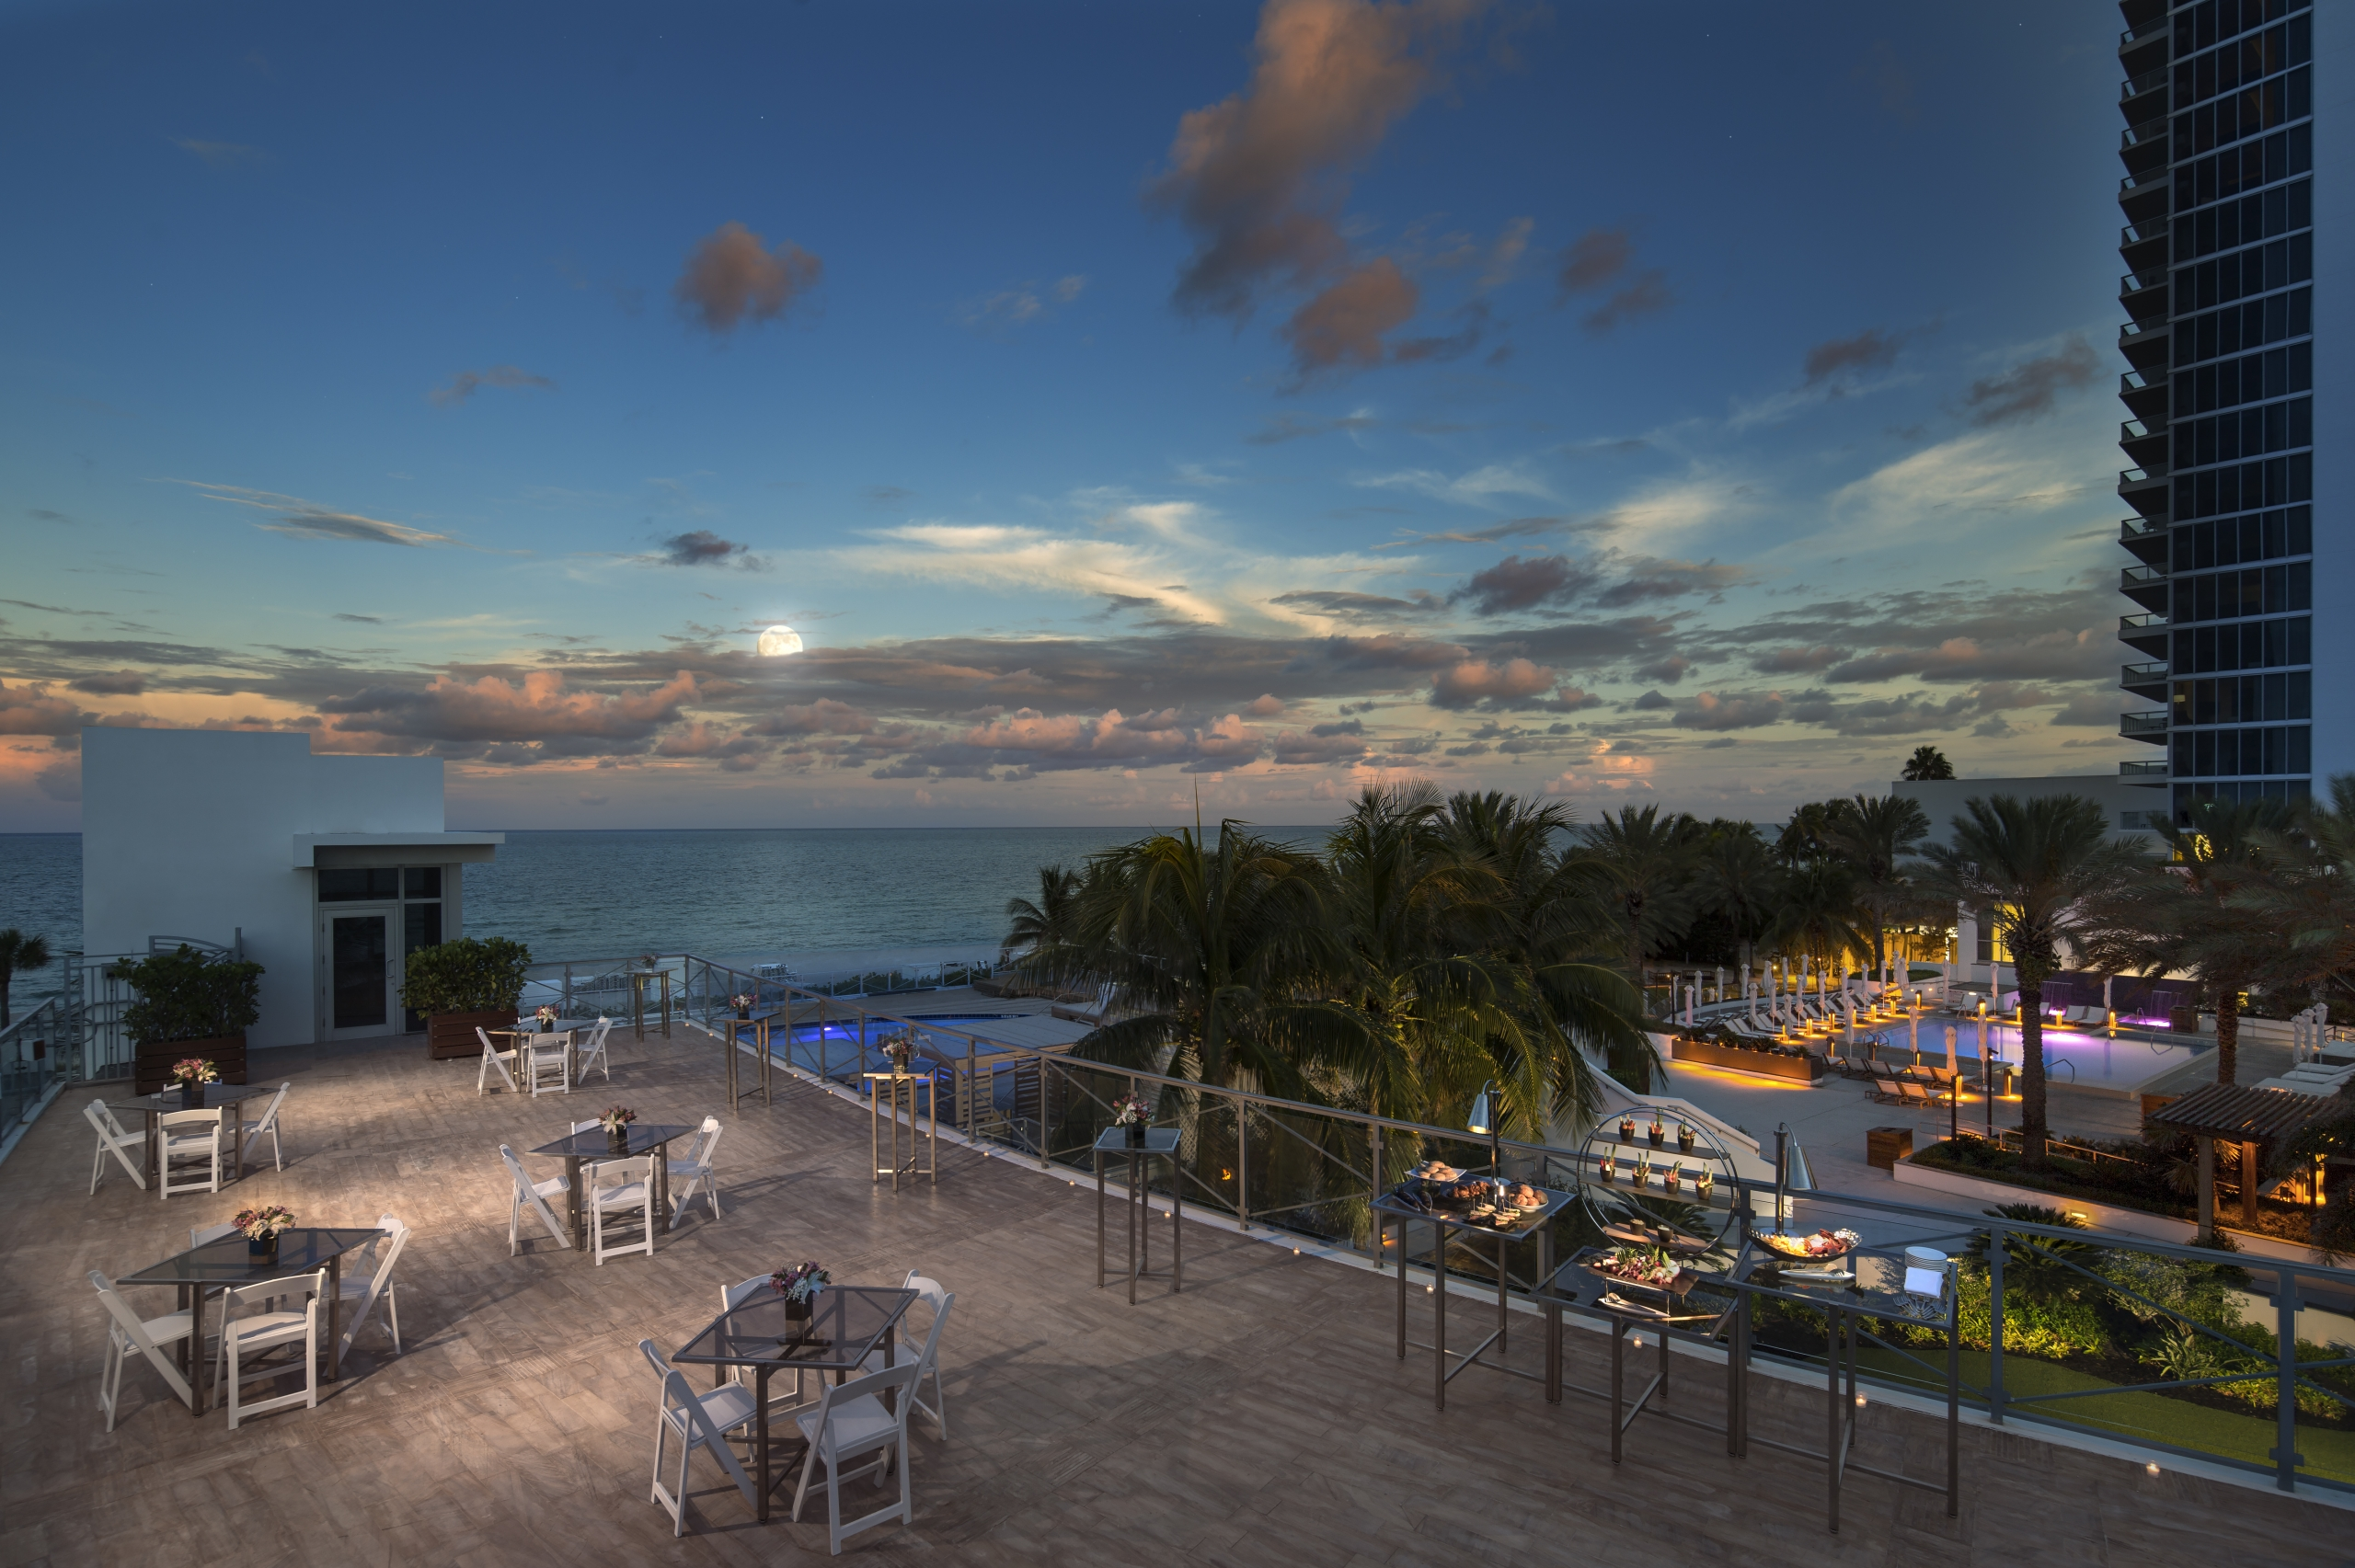 The moon and stunning view of Eden Roc, Miami Beach